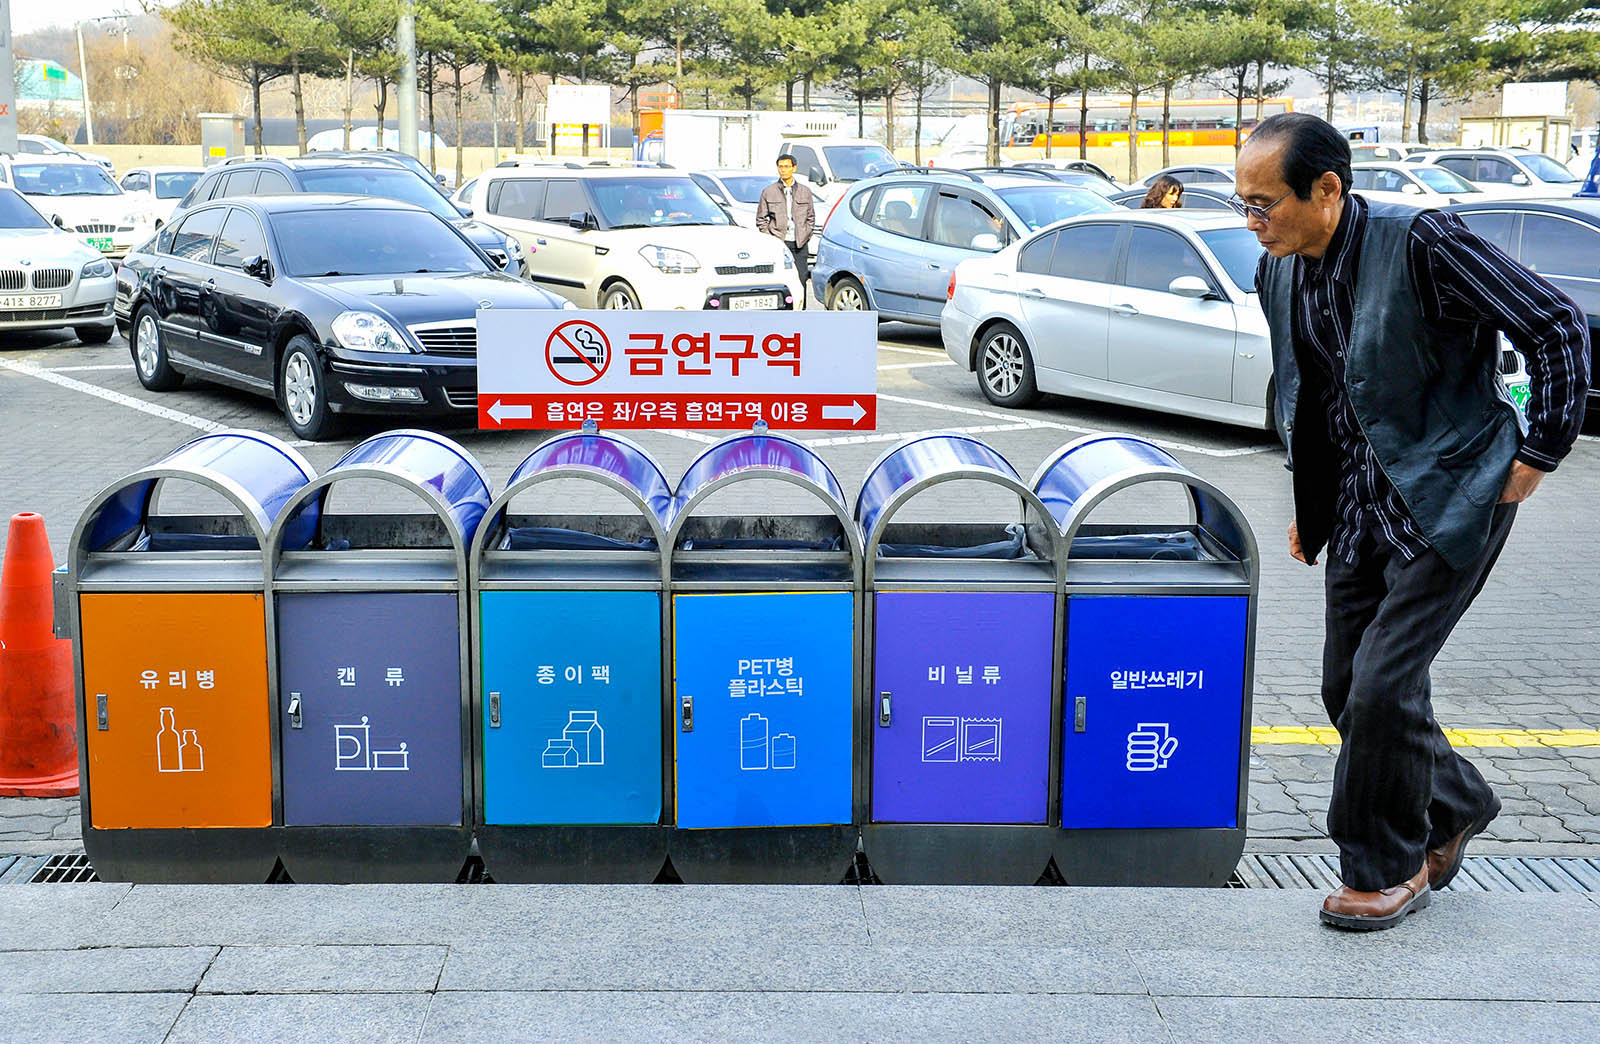 South Korea has the highest recycling rate for recycling among all Asian countries